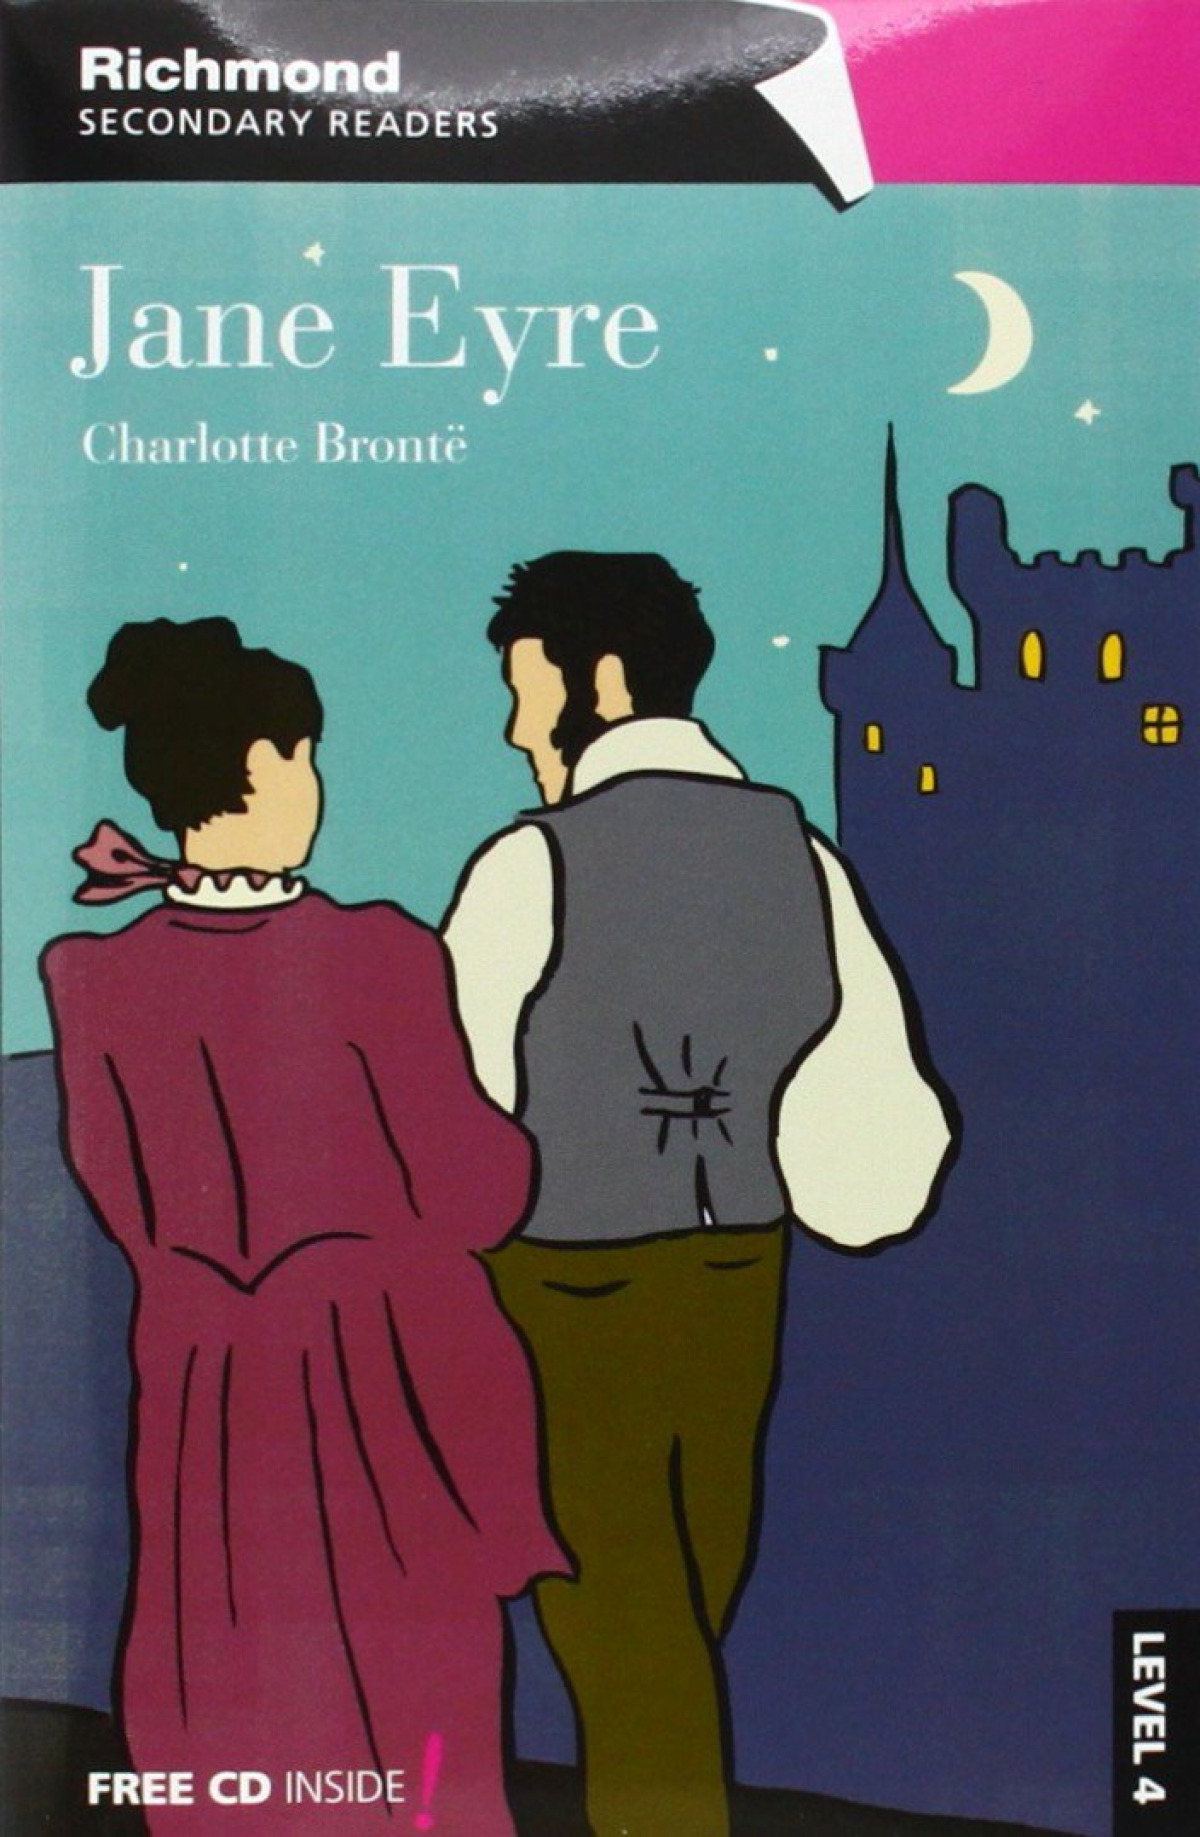 Jane eyre level 4 richmond secondary readers - Varios autores